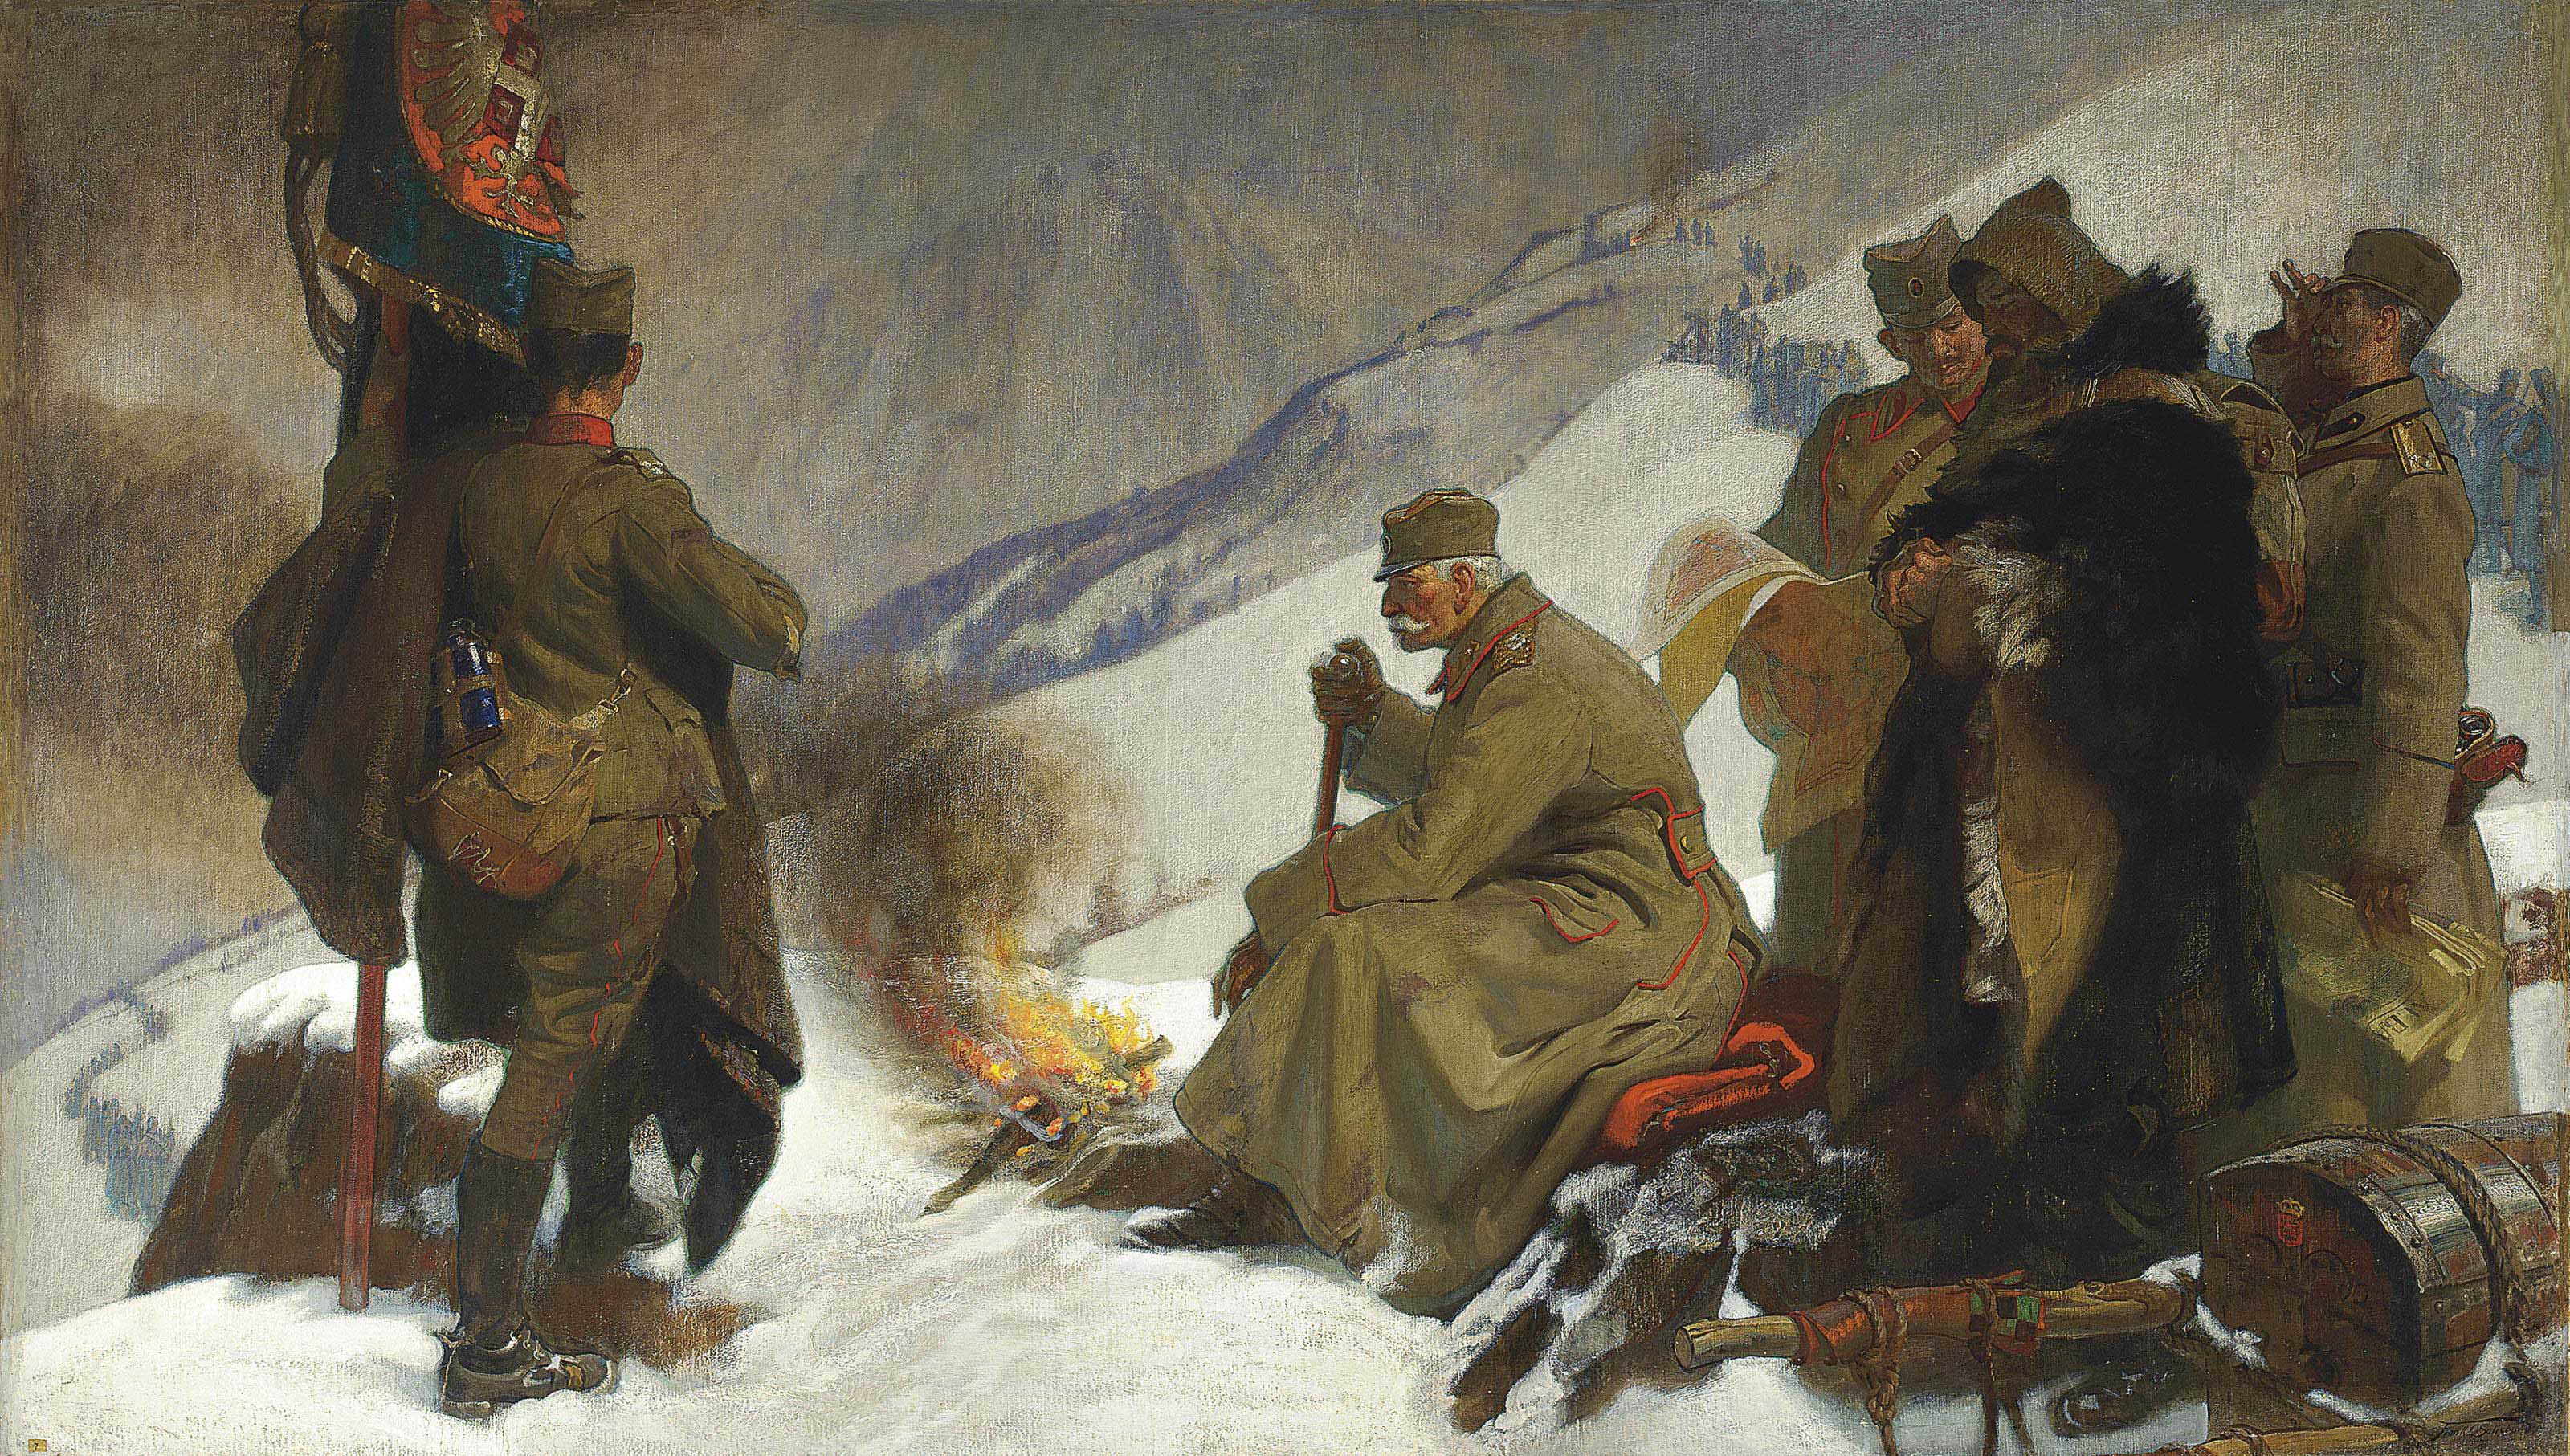 King Peter of Serbia retreating across the Albanian Mountains, 1915